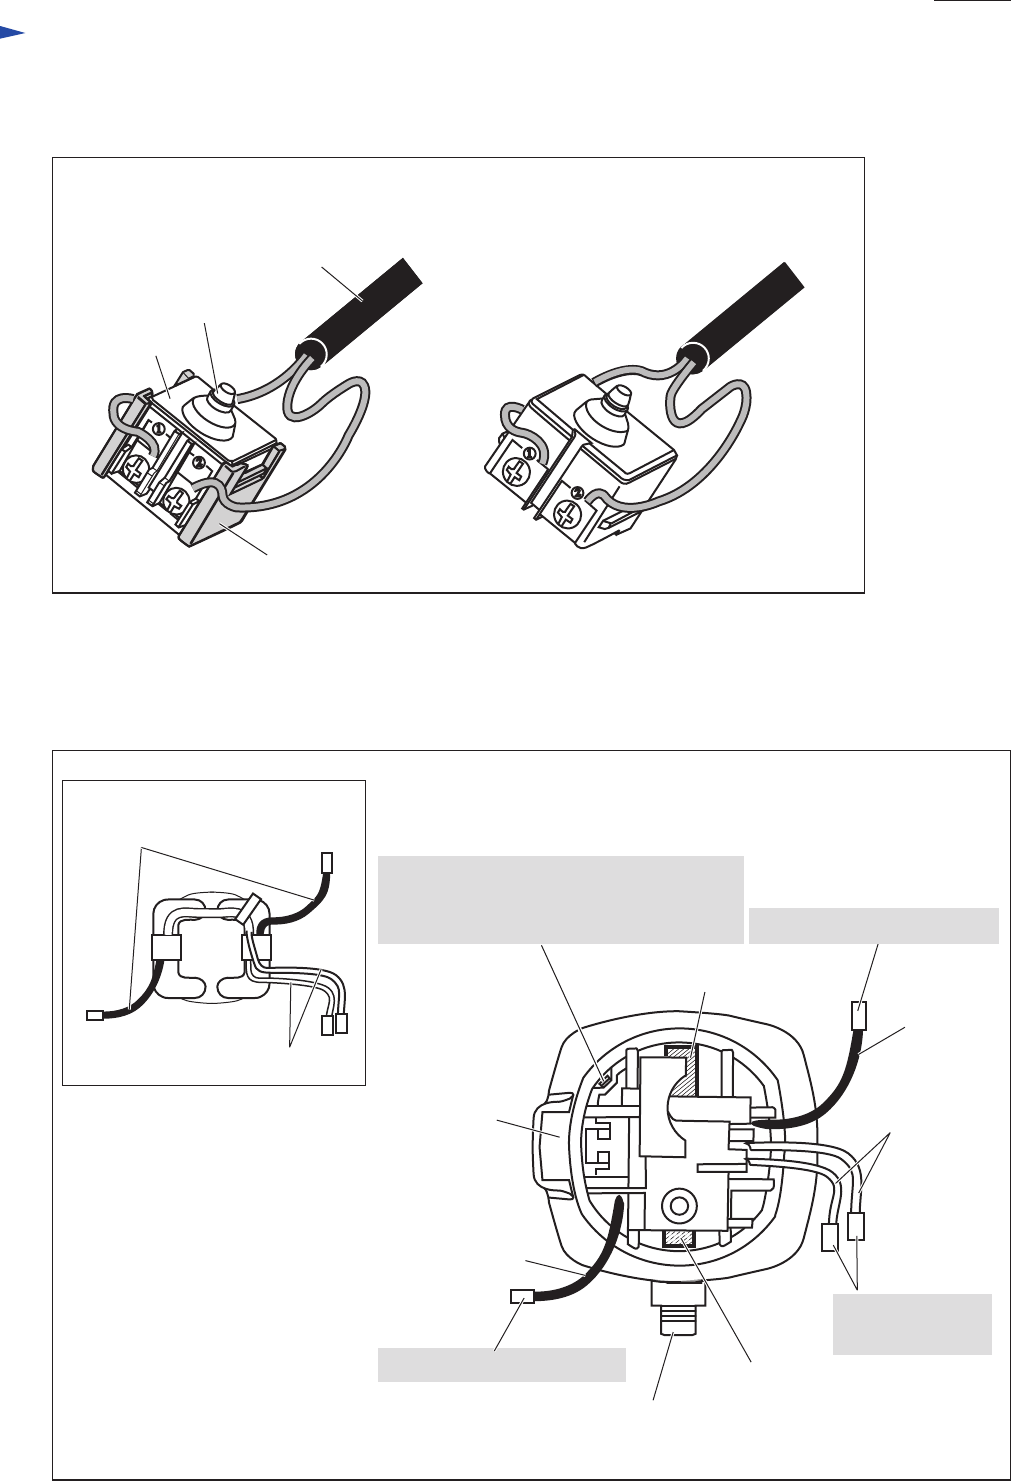 wiring diagram for makita angle grinder champion angle